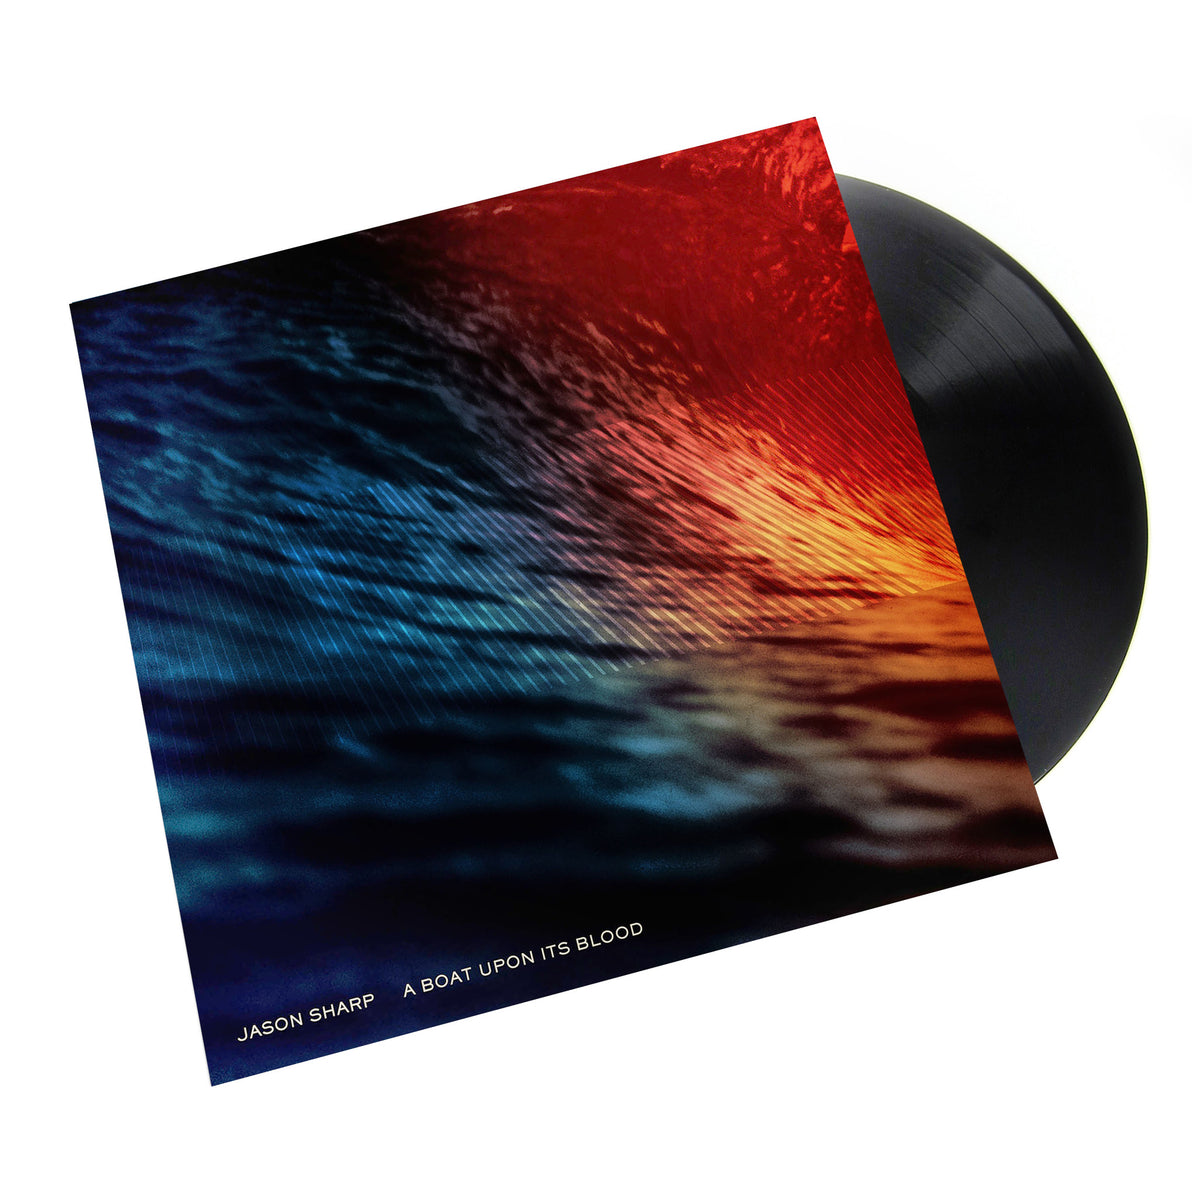 Constellation: Fall 2016 Constellation 180g Vinyl Bundle (Off World, Automatisme, Jason Sharp)